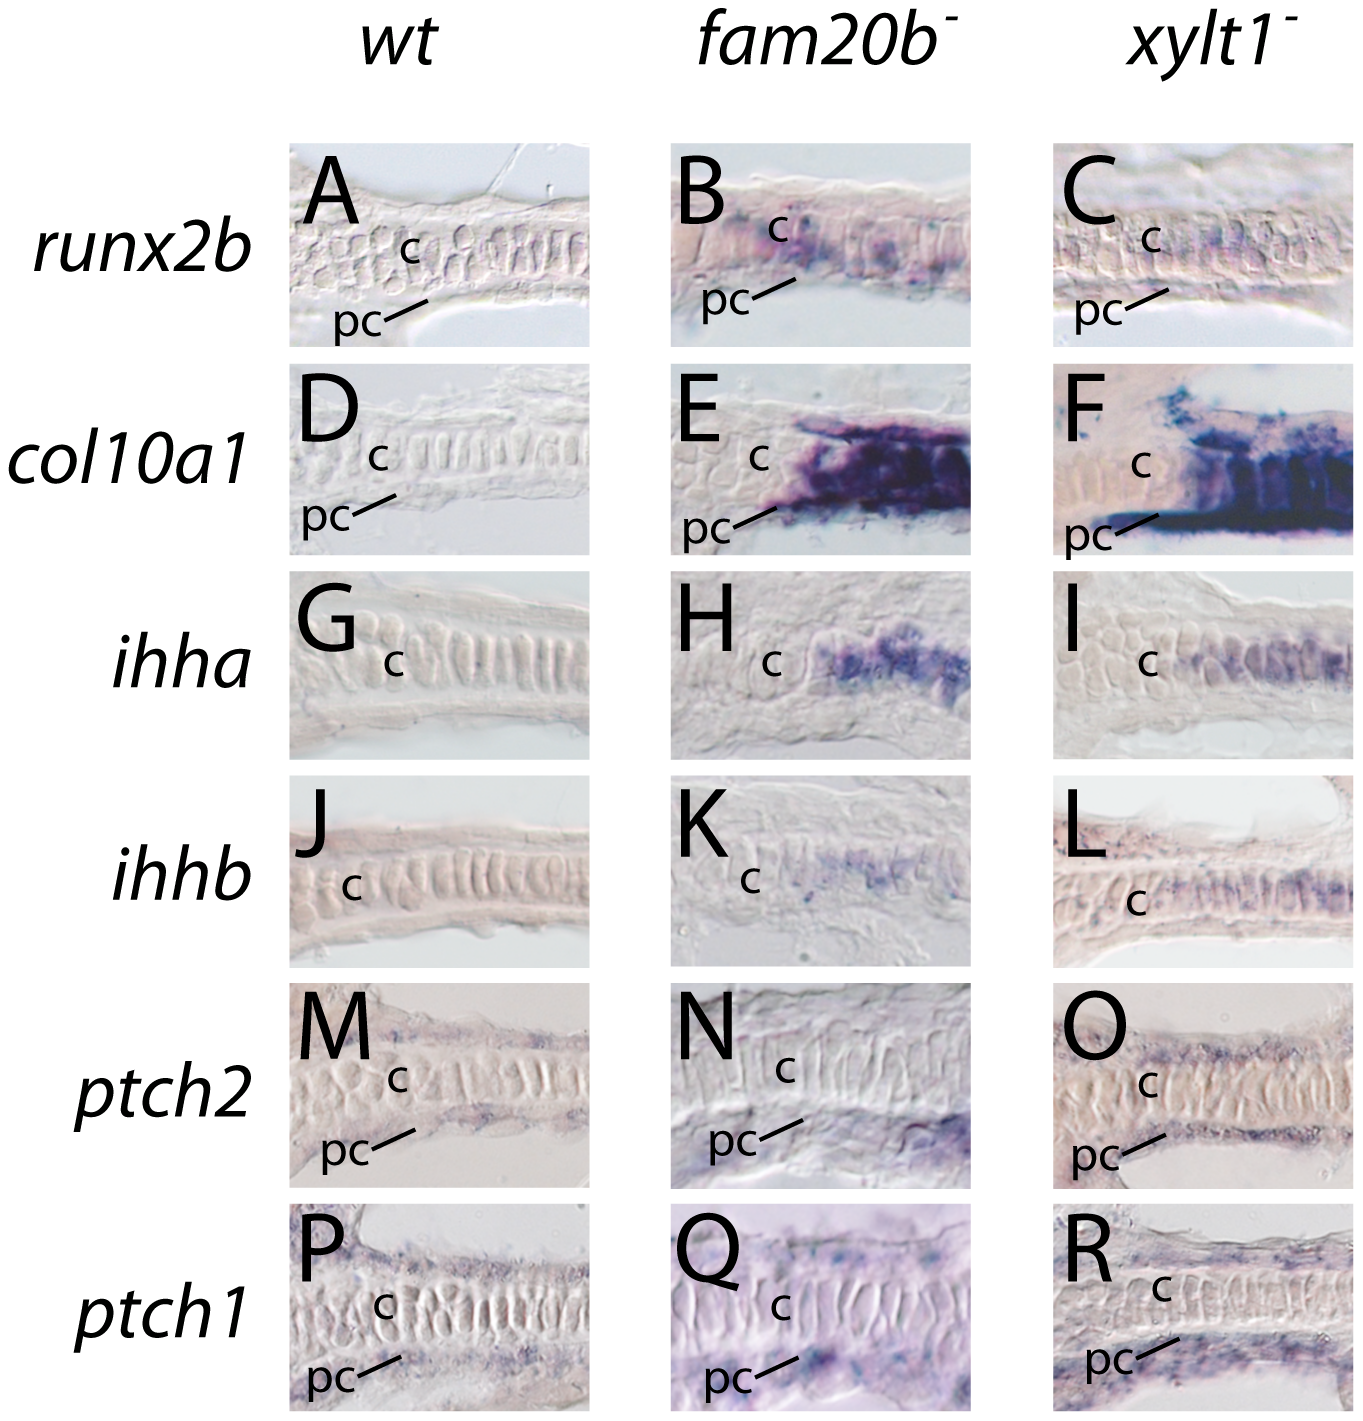 Early molecular markers of chondrocyte maturation in <i>fam20b</i> and <i>xylt1</i> mutants.